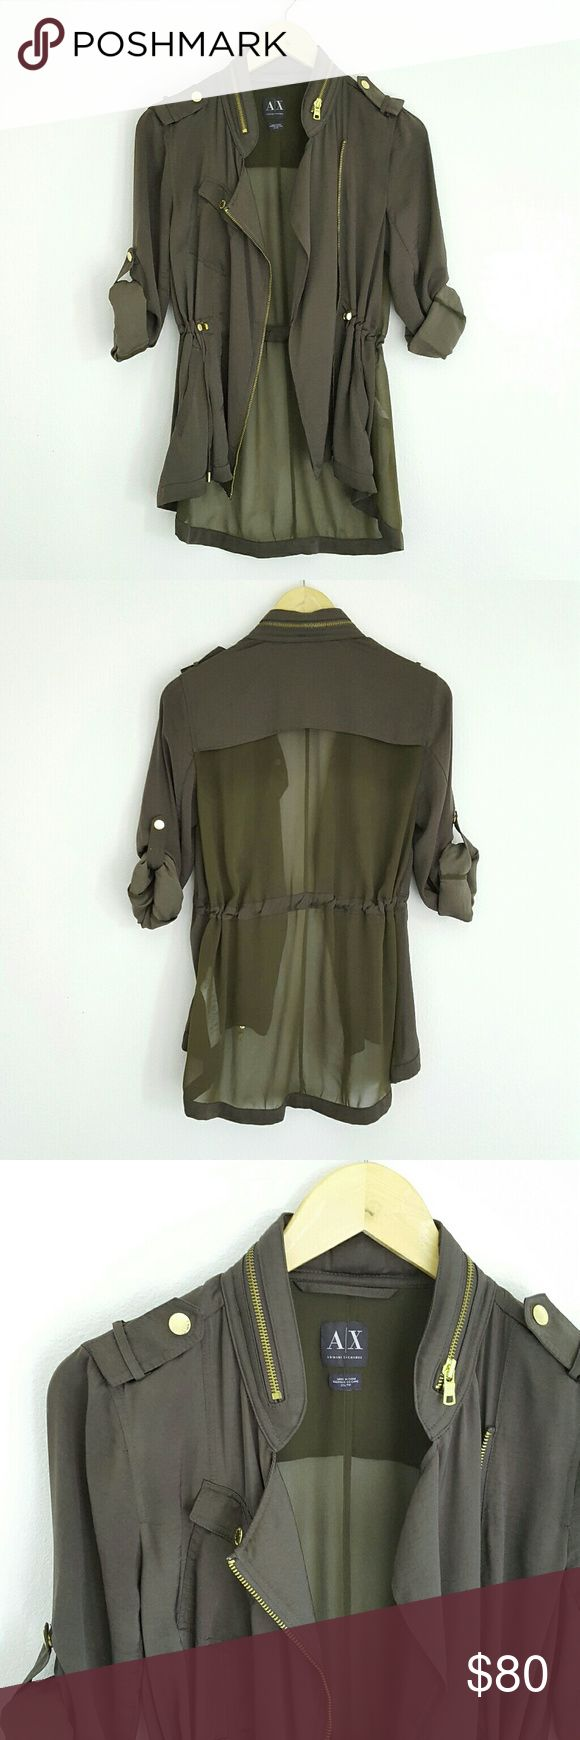 Armani Exchange lightweight jacket **PRE-OWNED item from my own closet!! ??   Very lightweight jacket with a very soft satin fabric that has a silky sheen to it.  The back has a contrast chiffon fabric. Mandarin style collar with metal zipper detail. Optional roll up cuffs with snap button.  Drawstring waist tie pull for loose or tight fit.   Color: dark military green   Sizing is a X-Small but it has a loose fit style so can fit a SMALL for a slightly more fitted look. Armani Exchange…